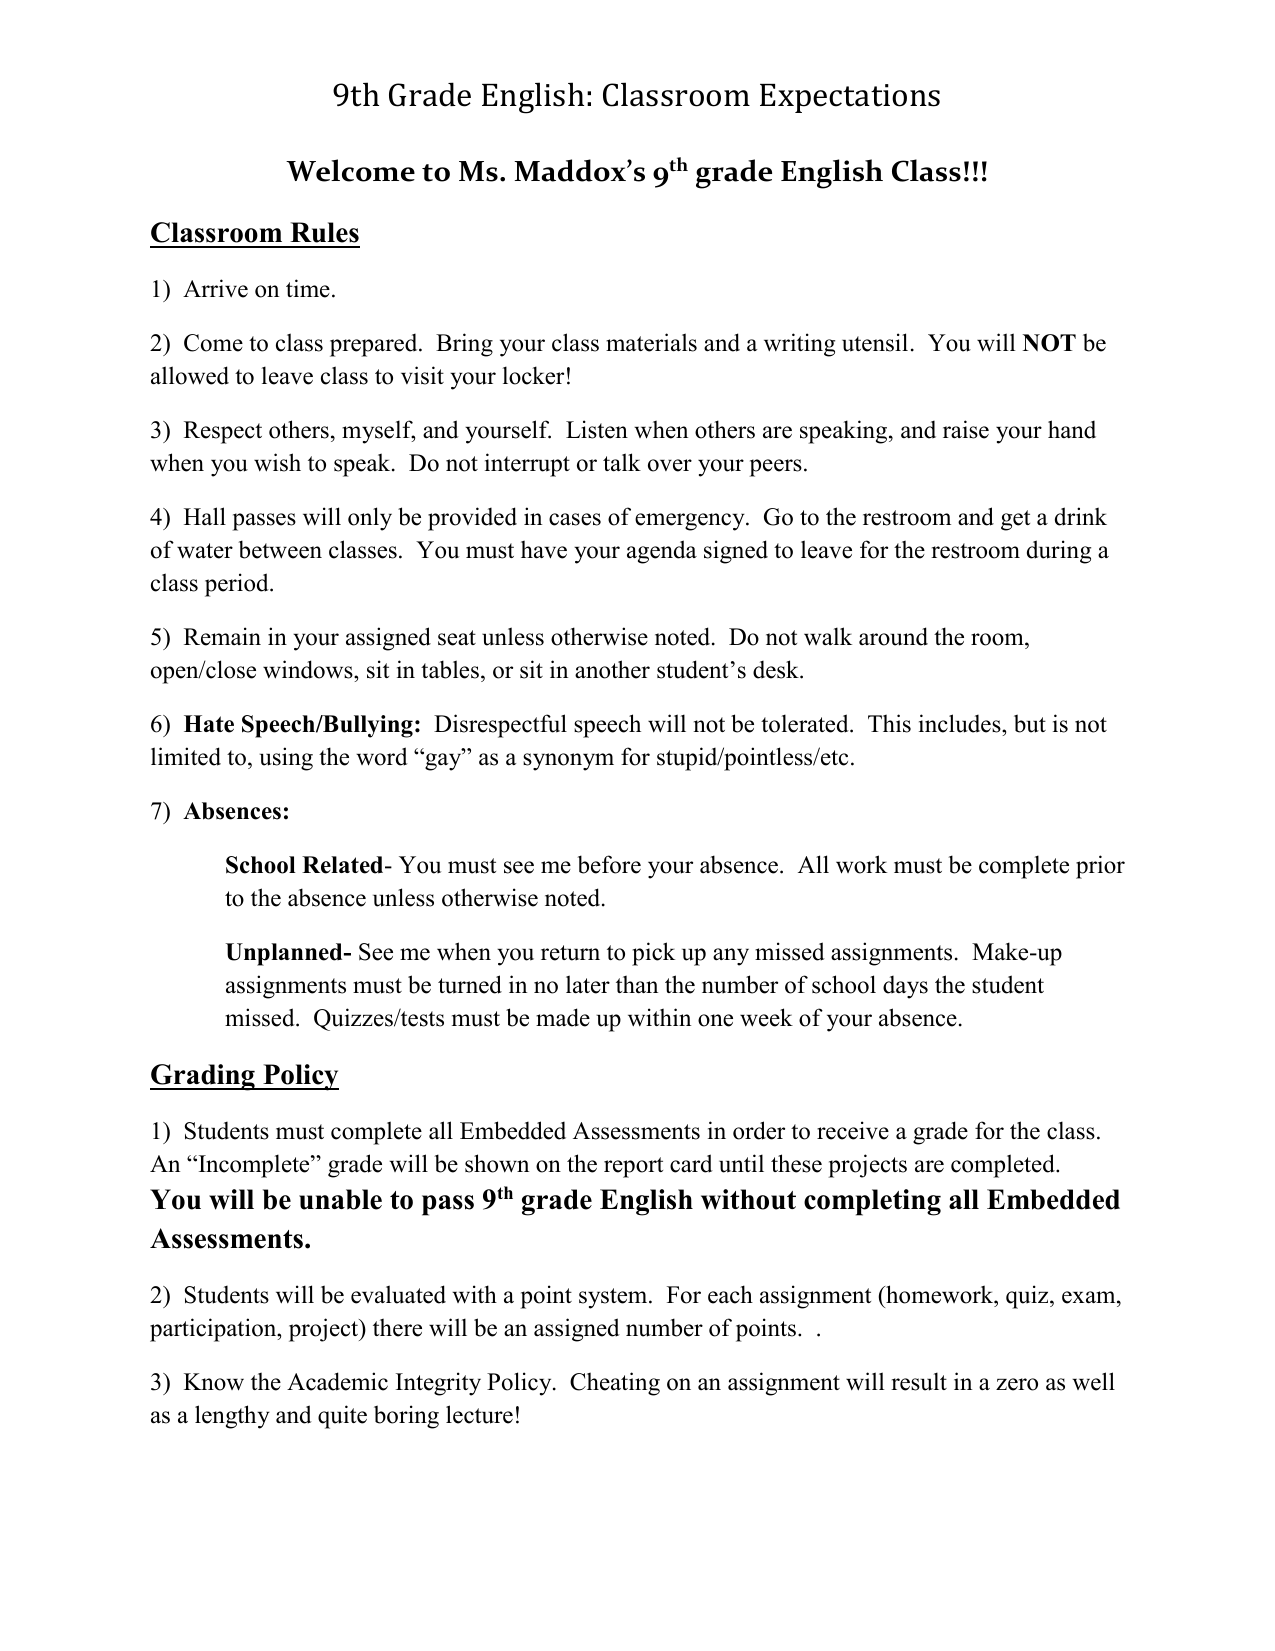 9th Grade English: Classroom Expectations